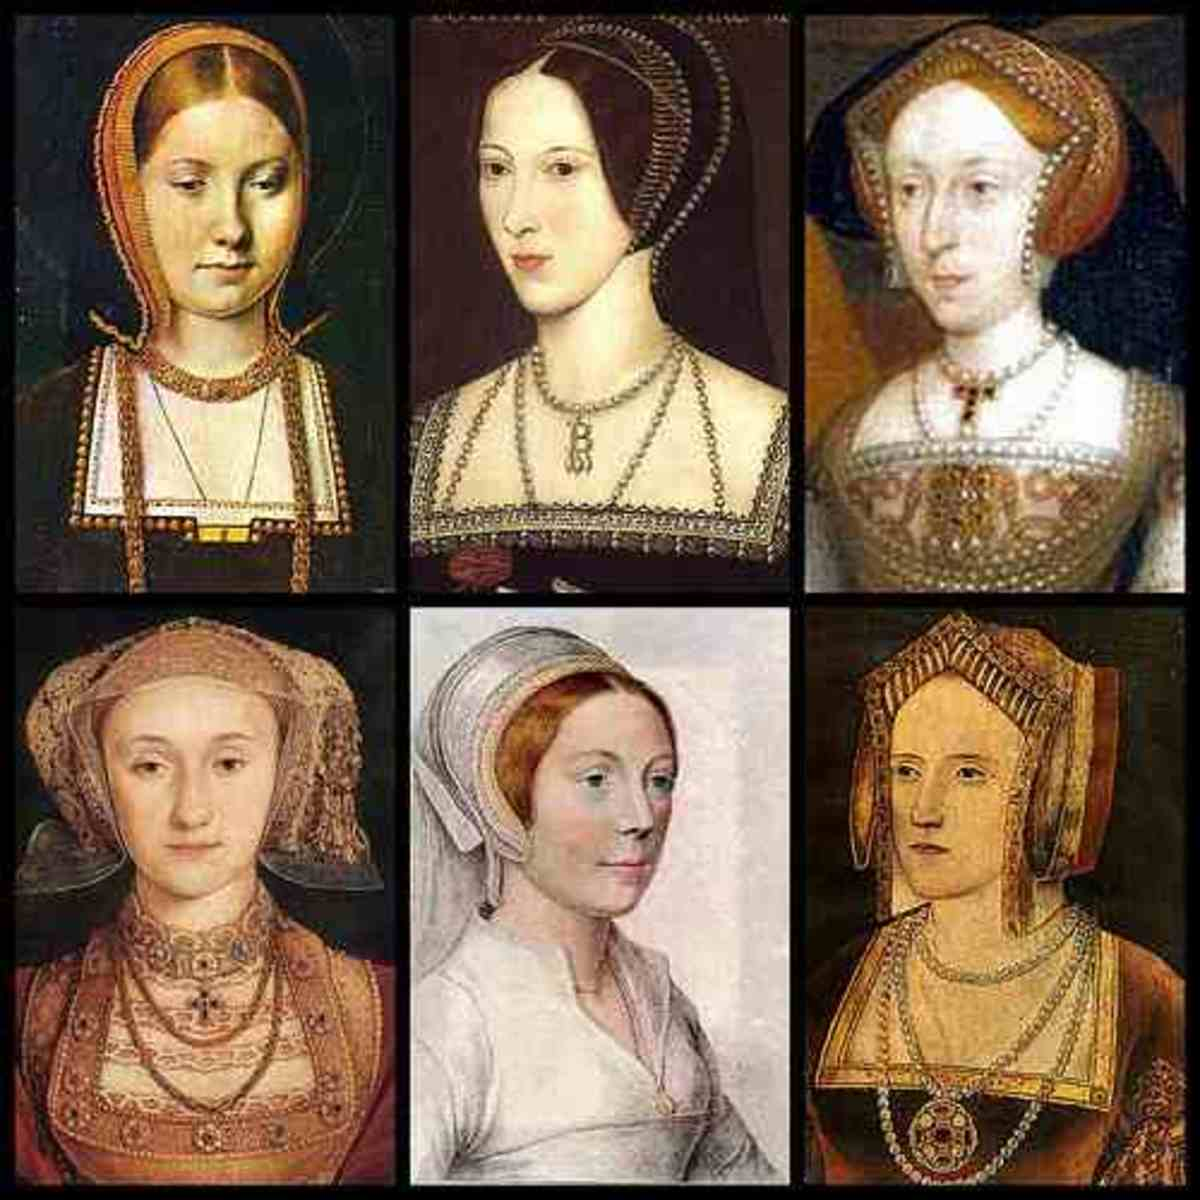 King Henry's six wives. But who was Elizabeths Mother? Starting from top left. Catherine of Aragon. Anne Boleyn. Jane Seymour. Anne of Cleves. Catherine Howard. Katherine Parr.